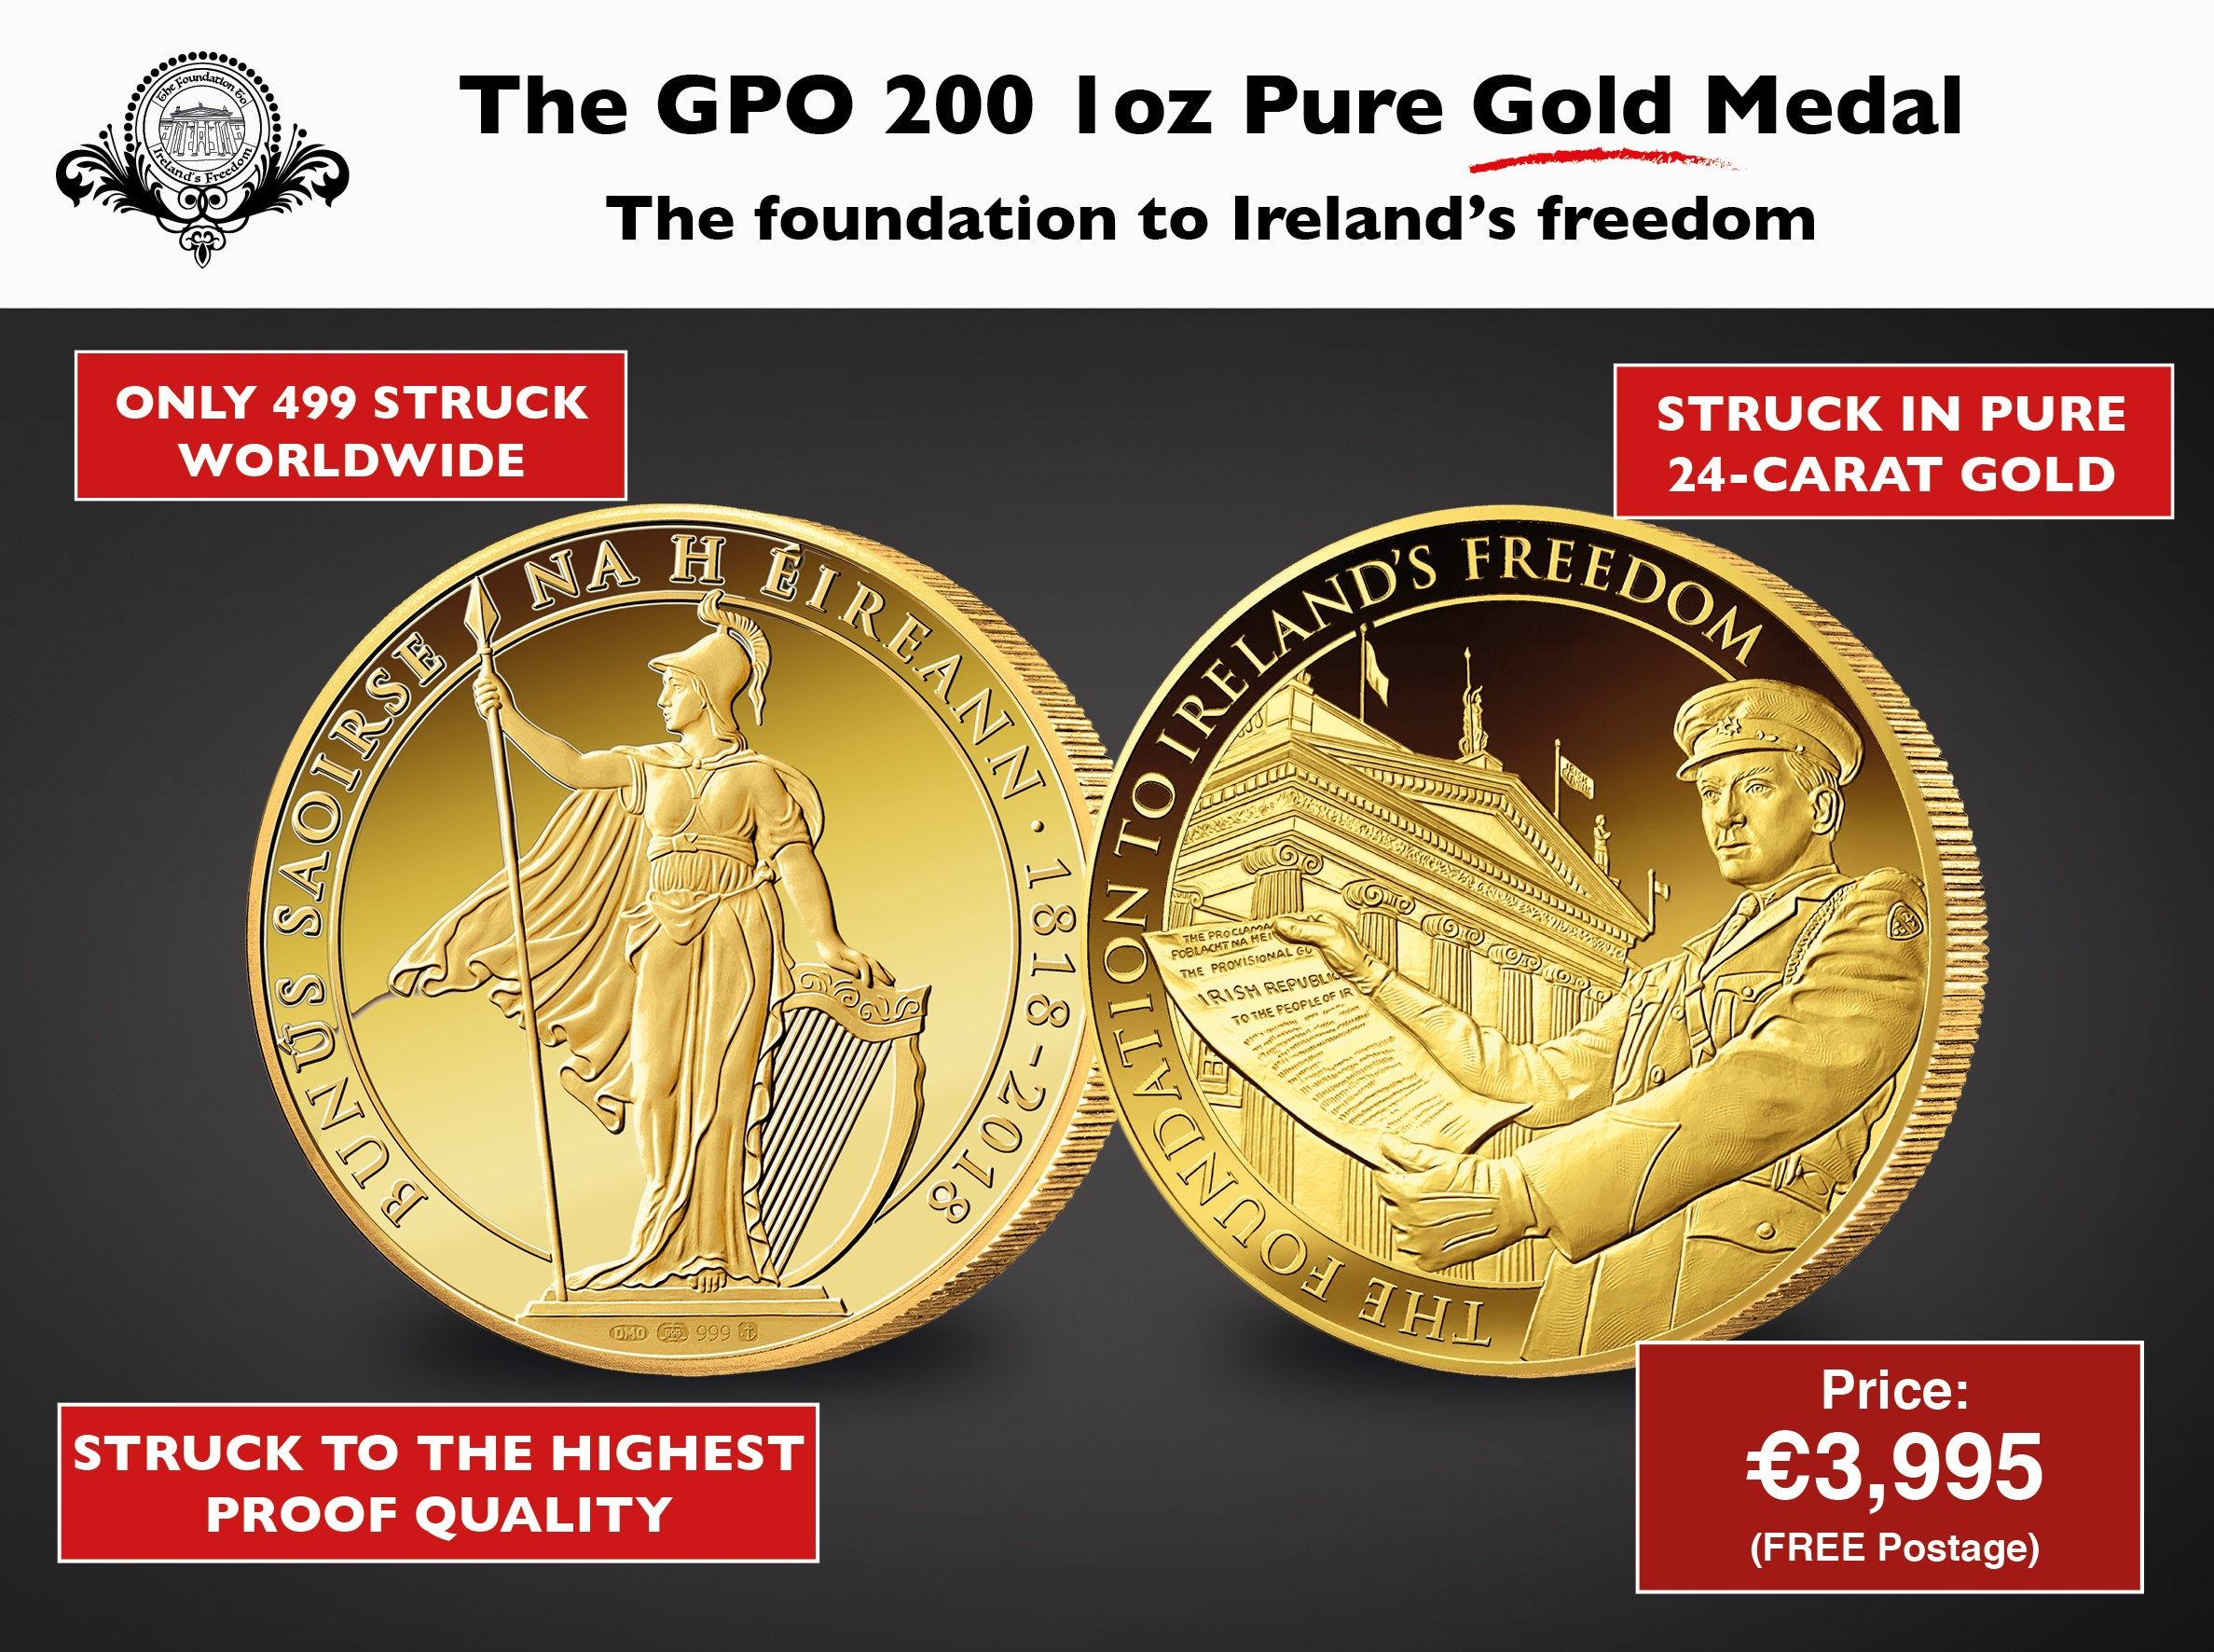 GPO 200 Pádraig Pearse 1oz Pure Gold Medal